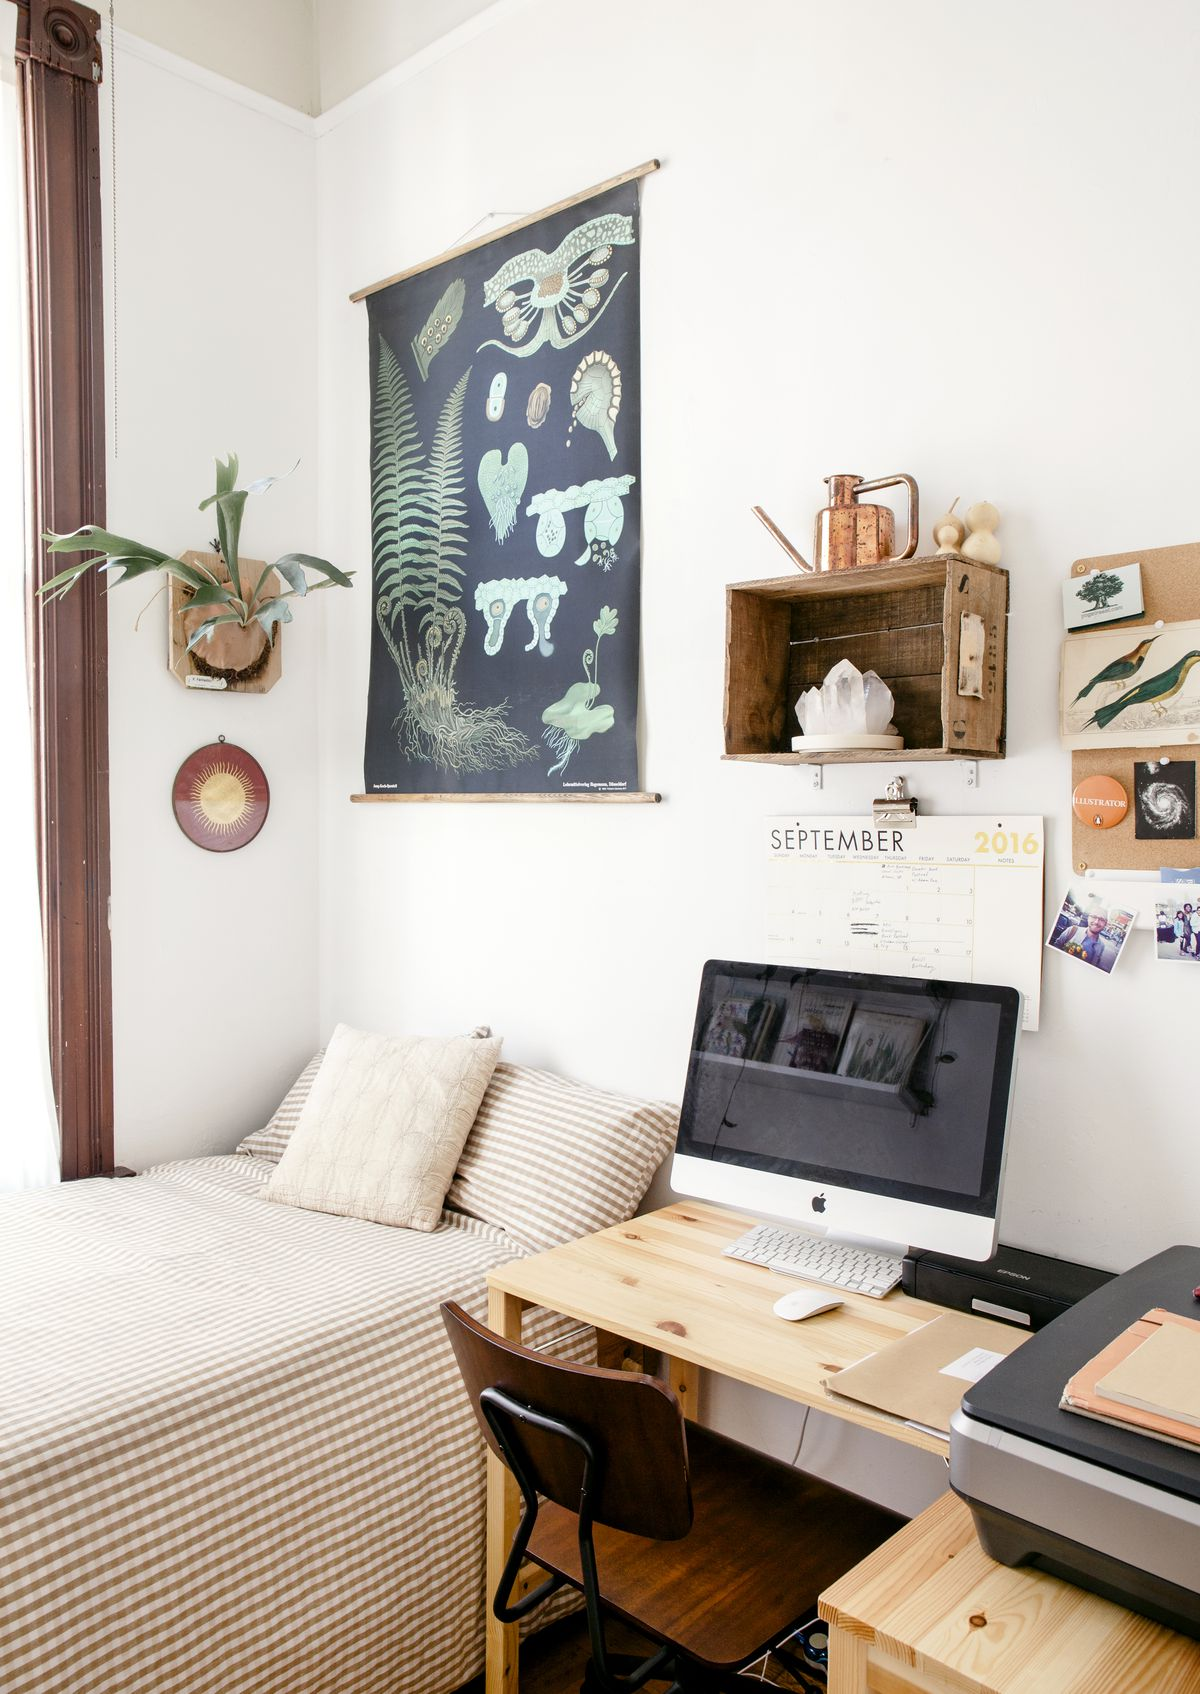 A bedroom with a bed that has patterned bed linens, a wooden desk, multiple works of art on the walls, and a plant.